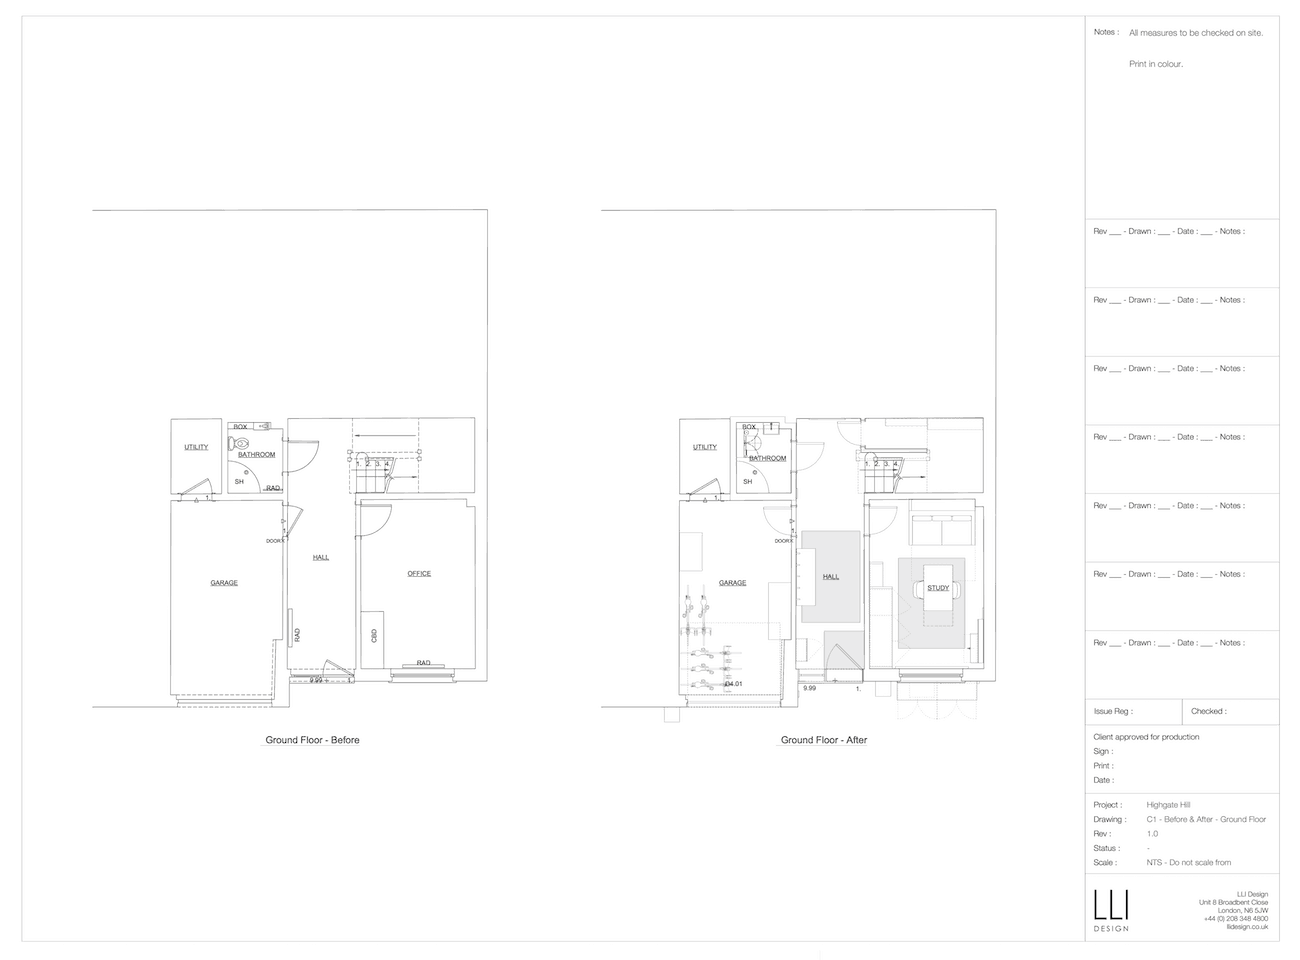 Floor plan for ground floor of townhouse before and after a renovation.